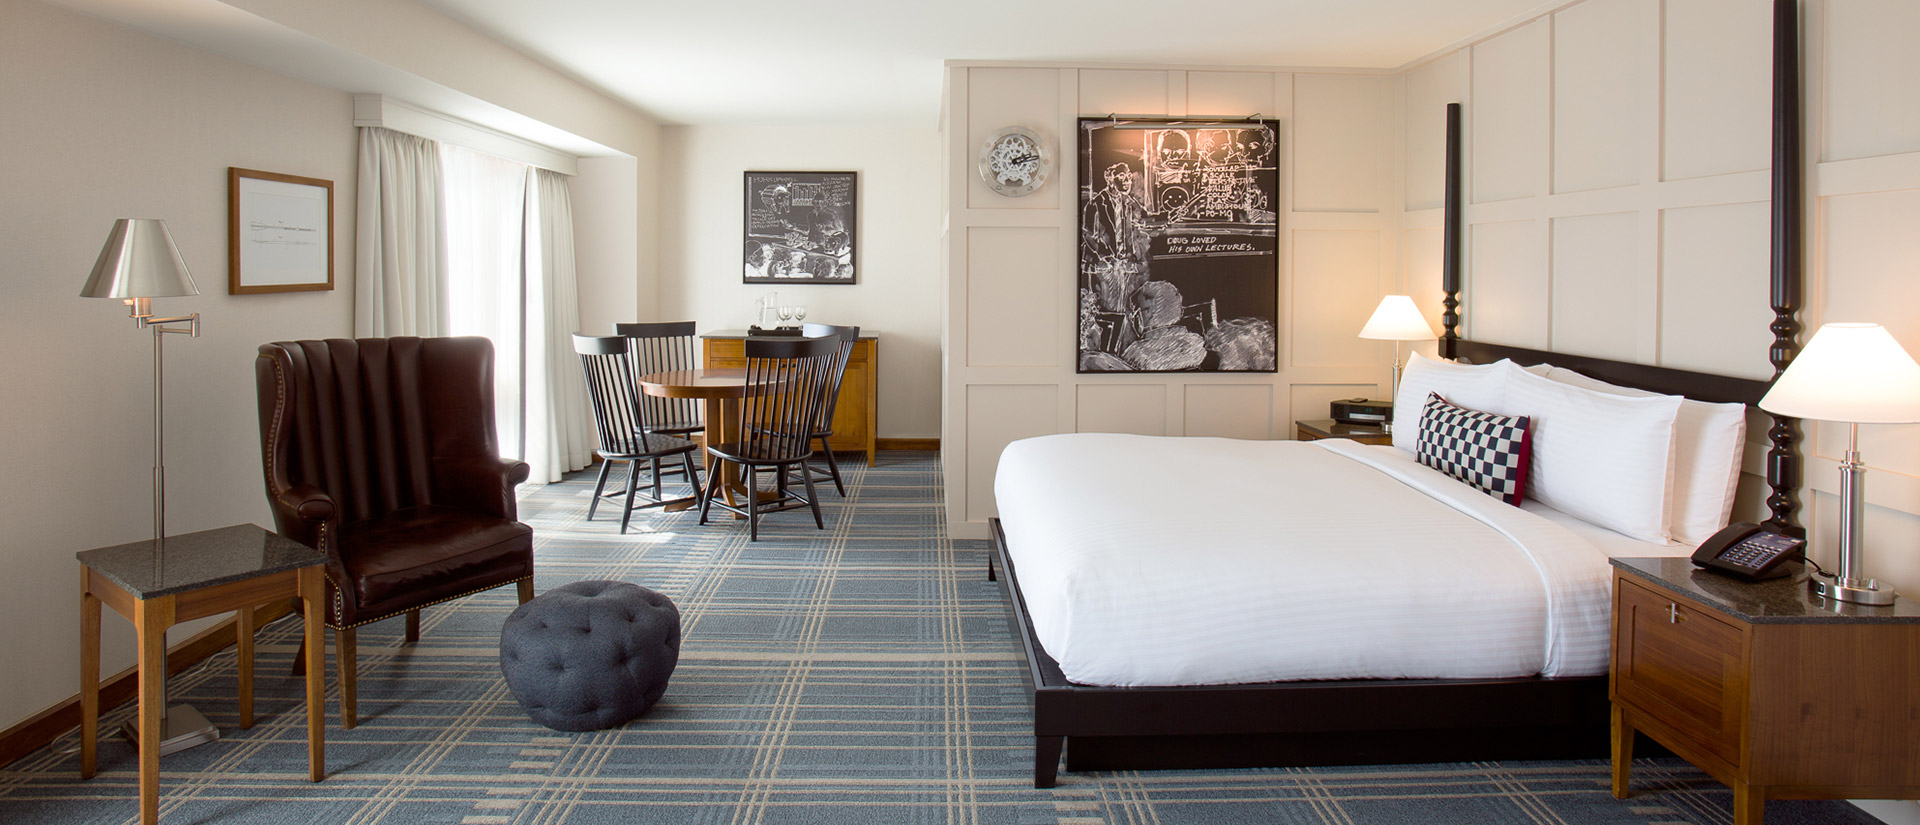 Cambridge Hotels MA   The Charles Hotel - Rooms & Suites   Hotels ...